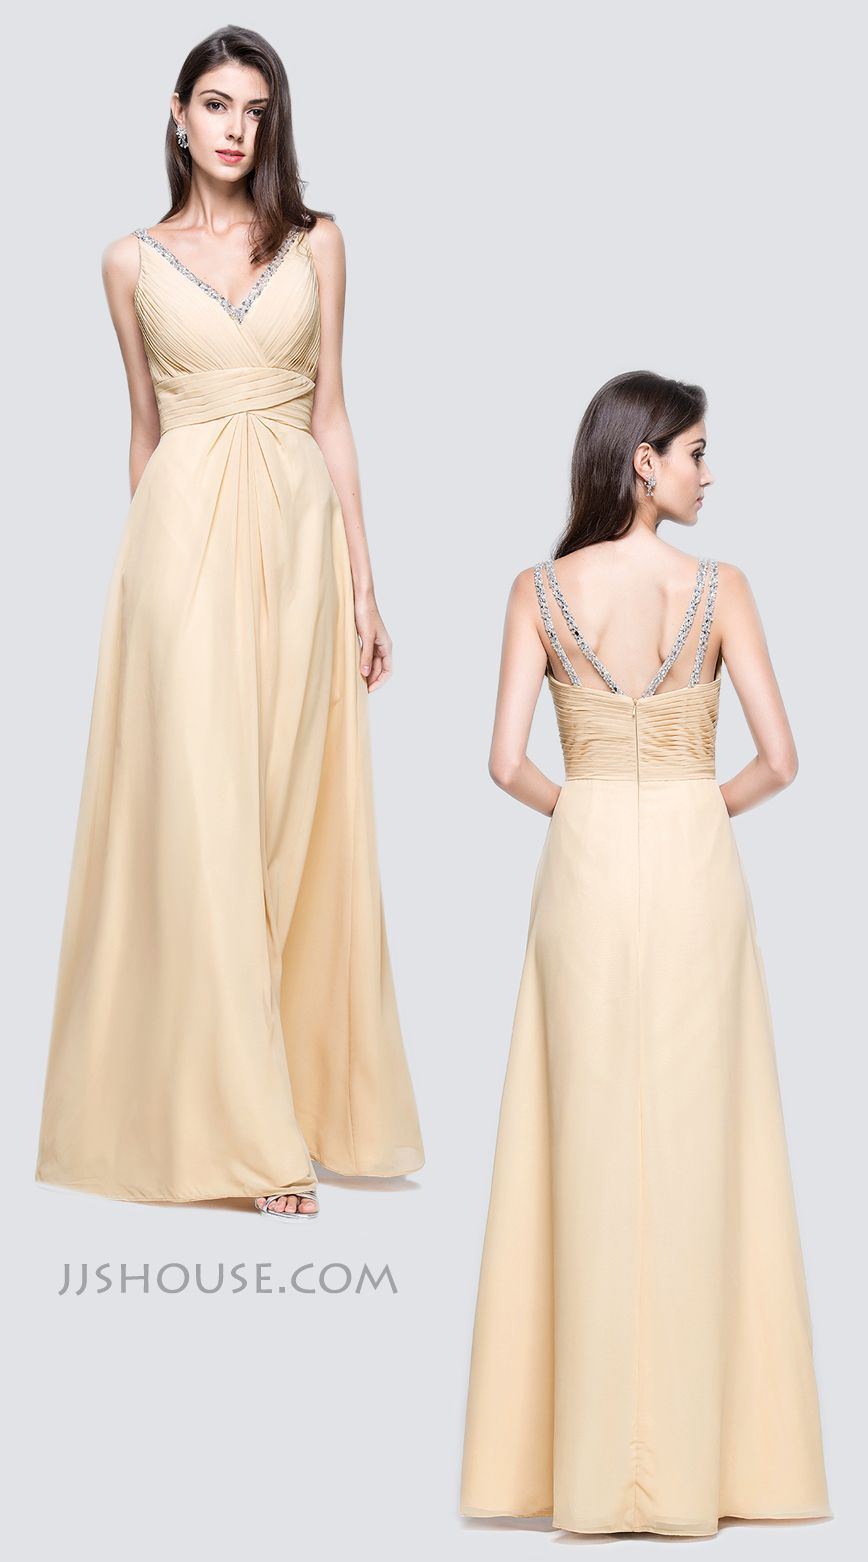 Alineprincess vneck floorlength chiffon prom dresses with ruffle